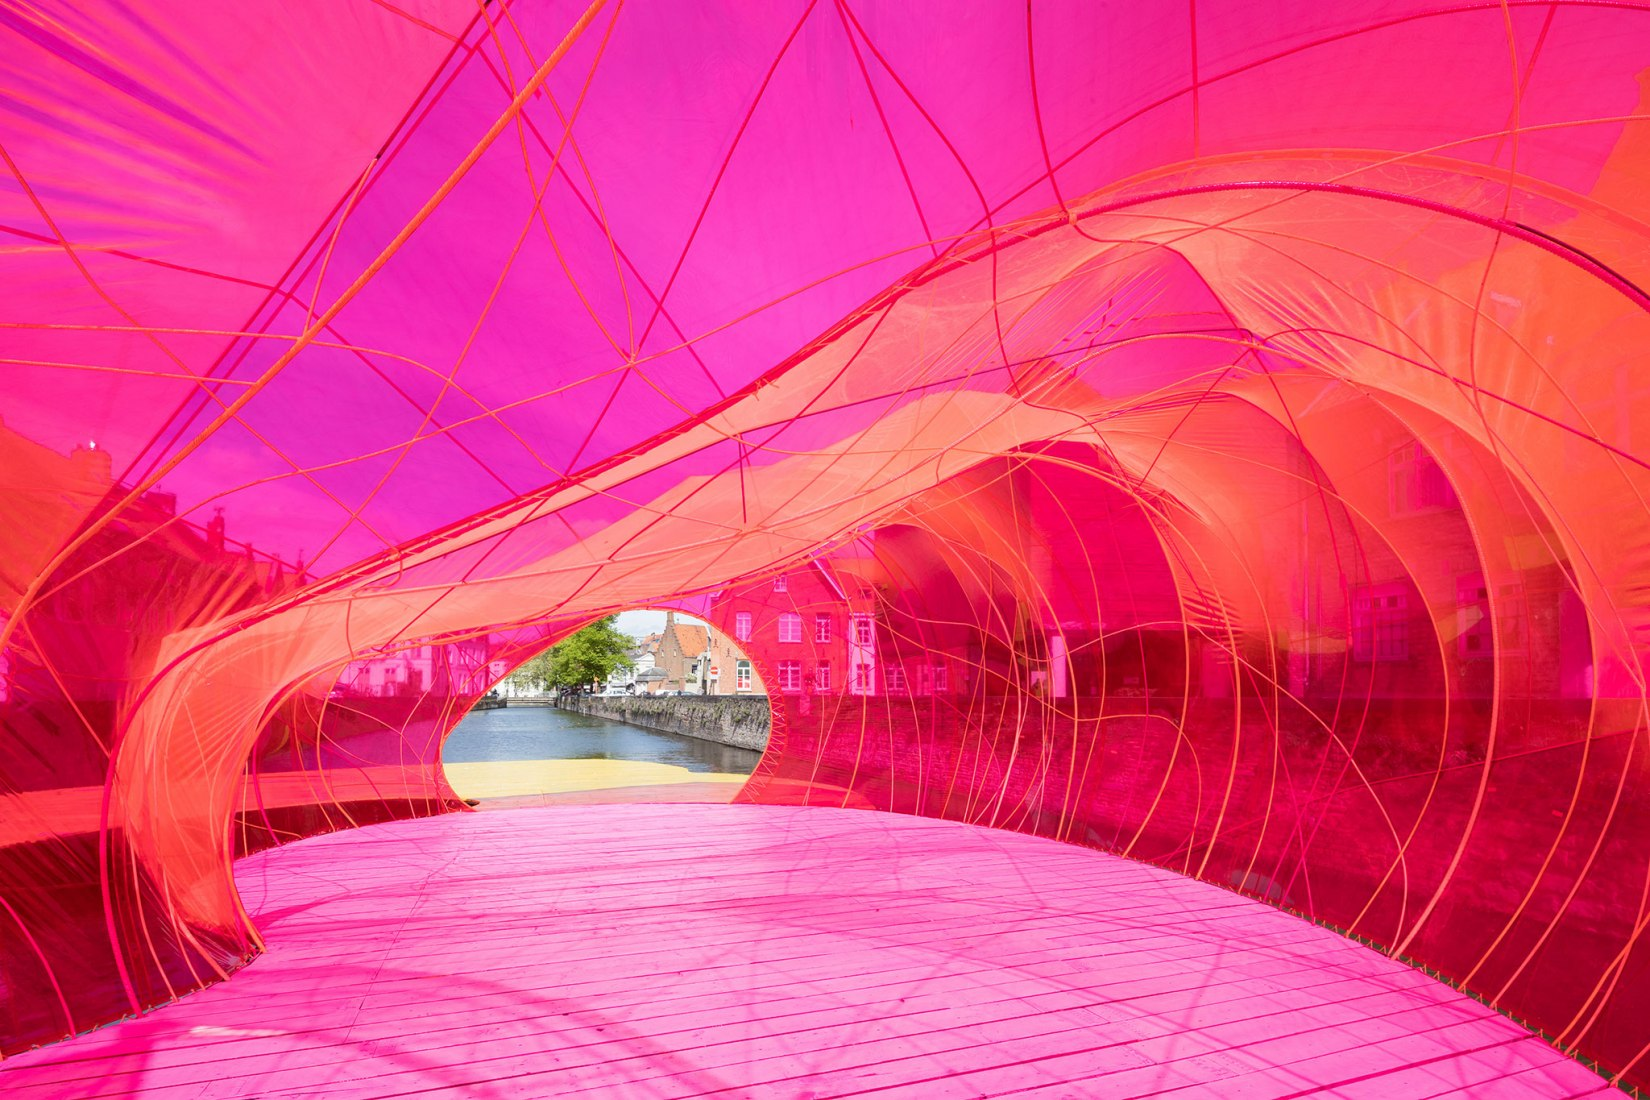 Pavilion at the Bruges Triennial by Selgascano. Photograph by Iwan Baan